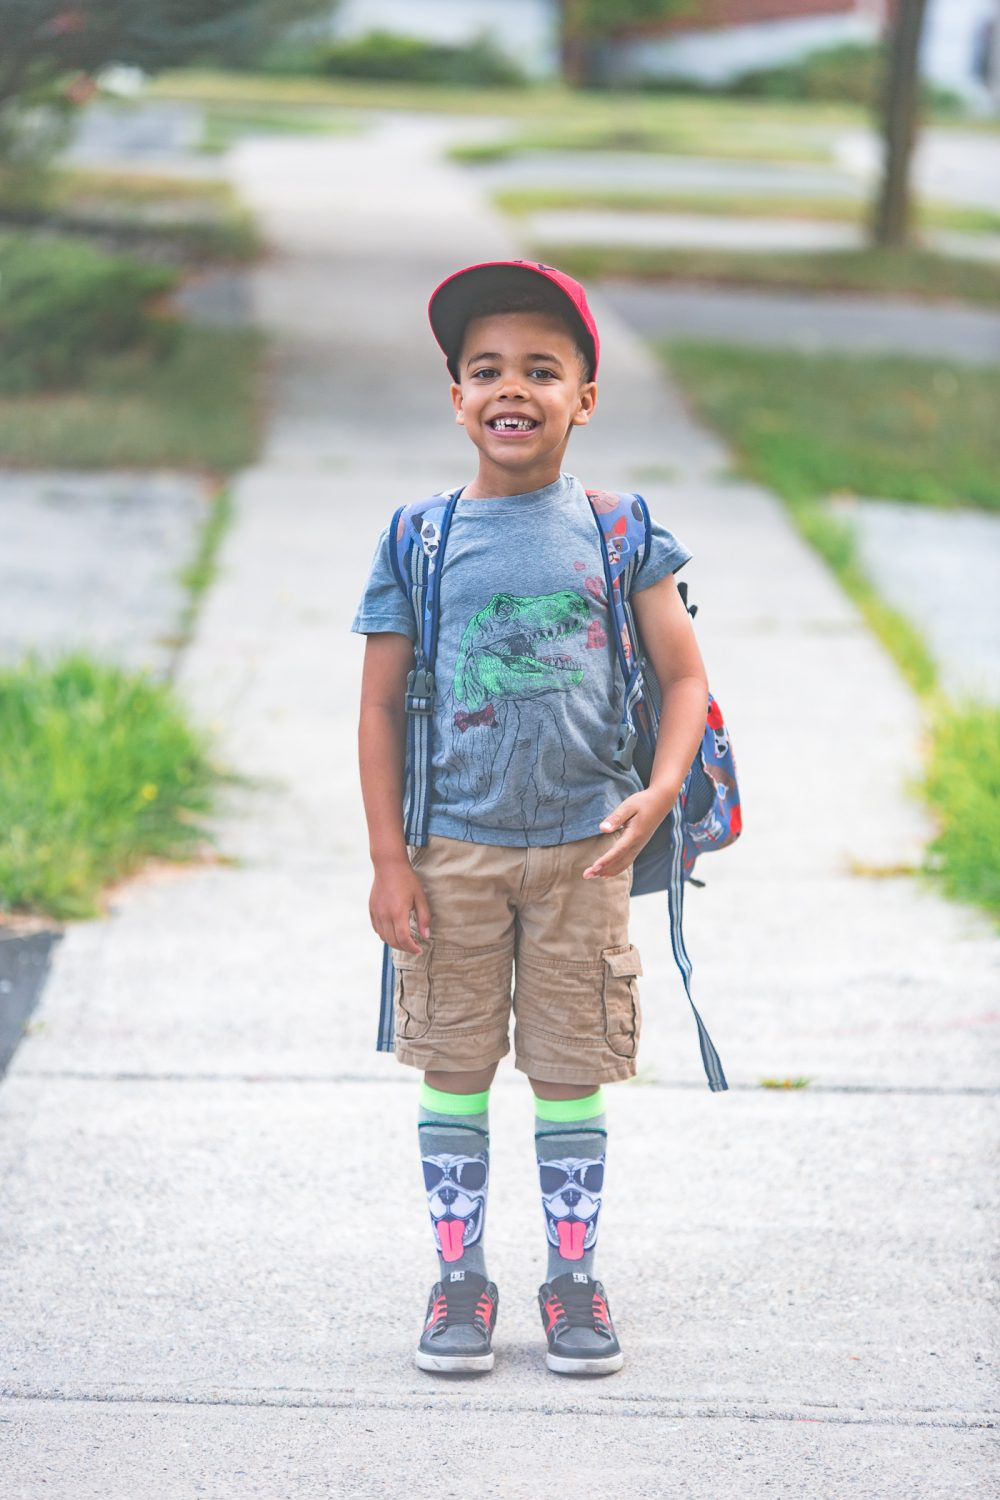 Young boy ready for first day of school, Wearing a red hat, grey shirt with a dinosaur and knee socks with a dog on them.